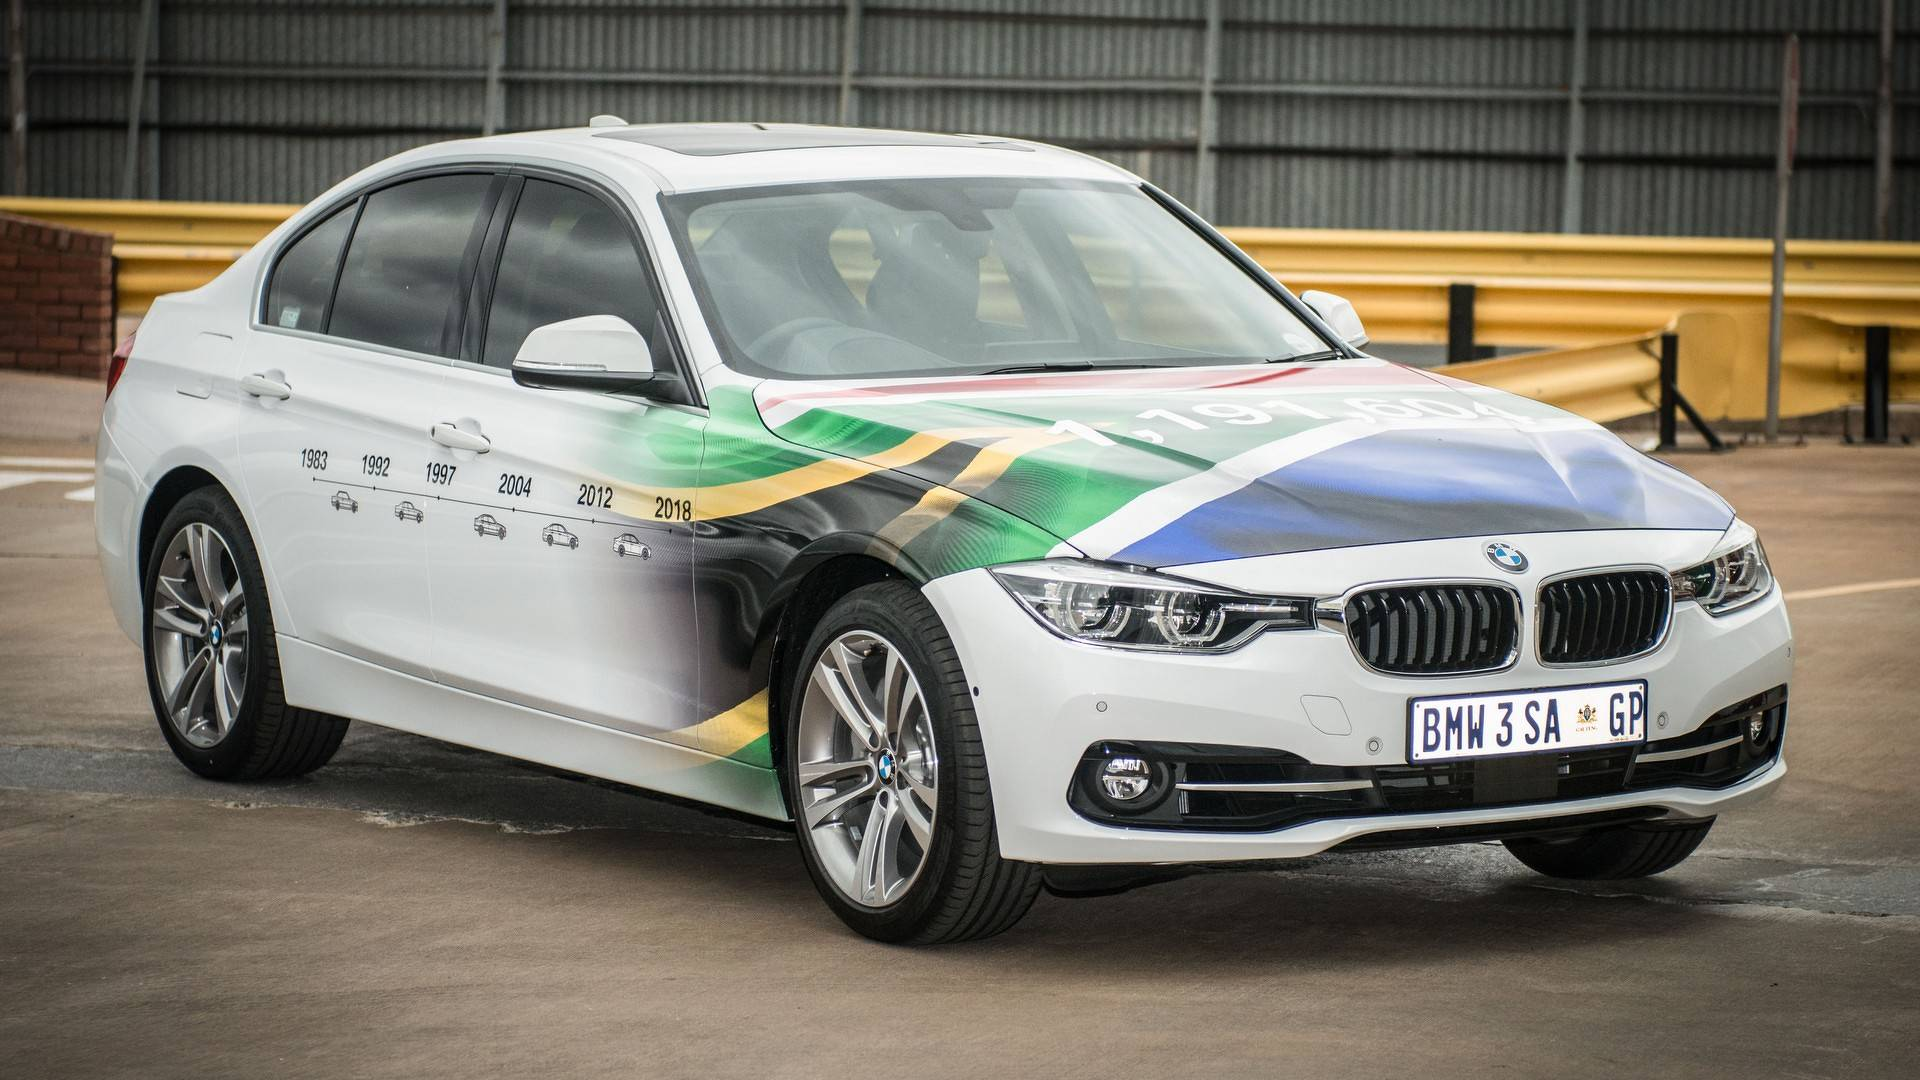 BMW_3_Series_built_Rosslyn_factory_South_Africa_0002